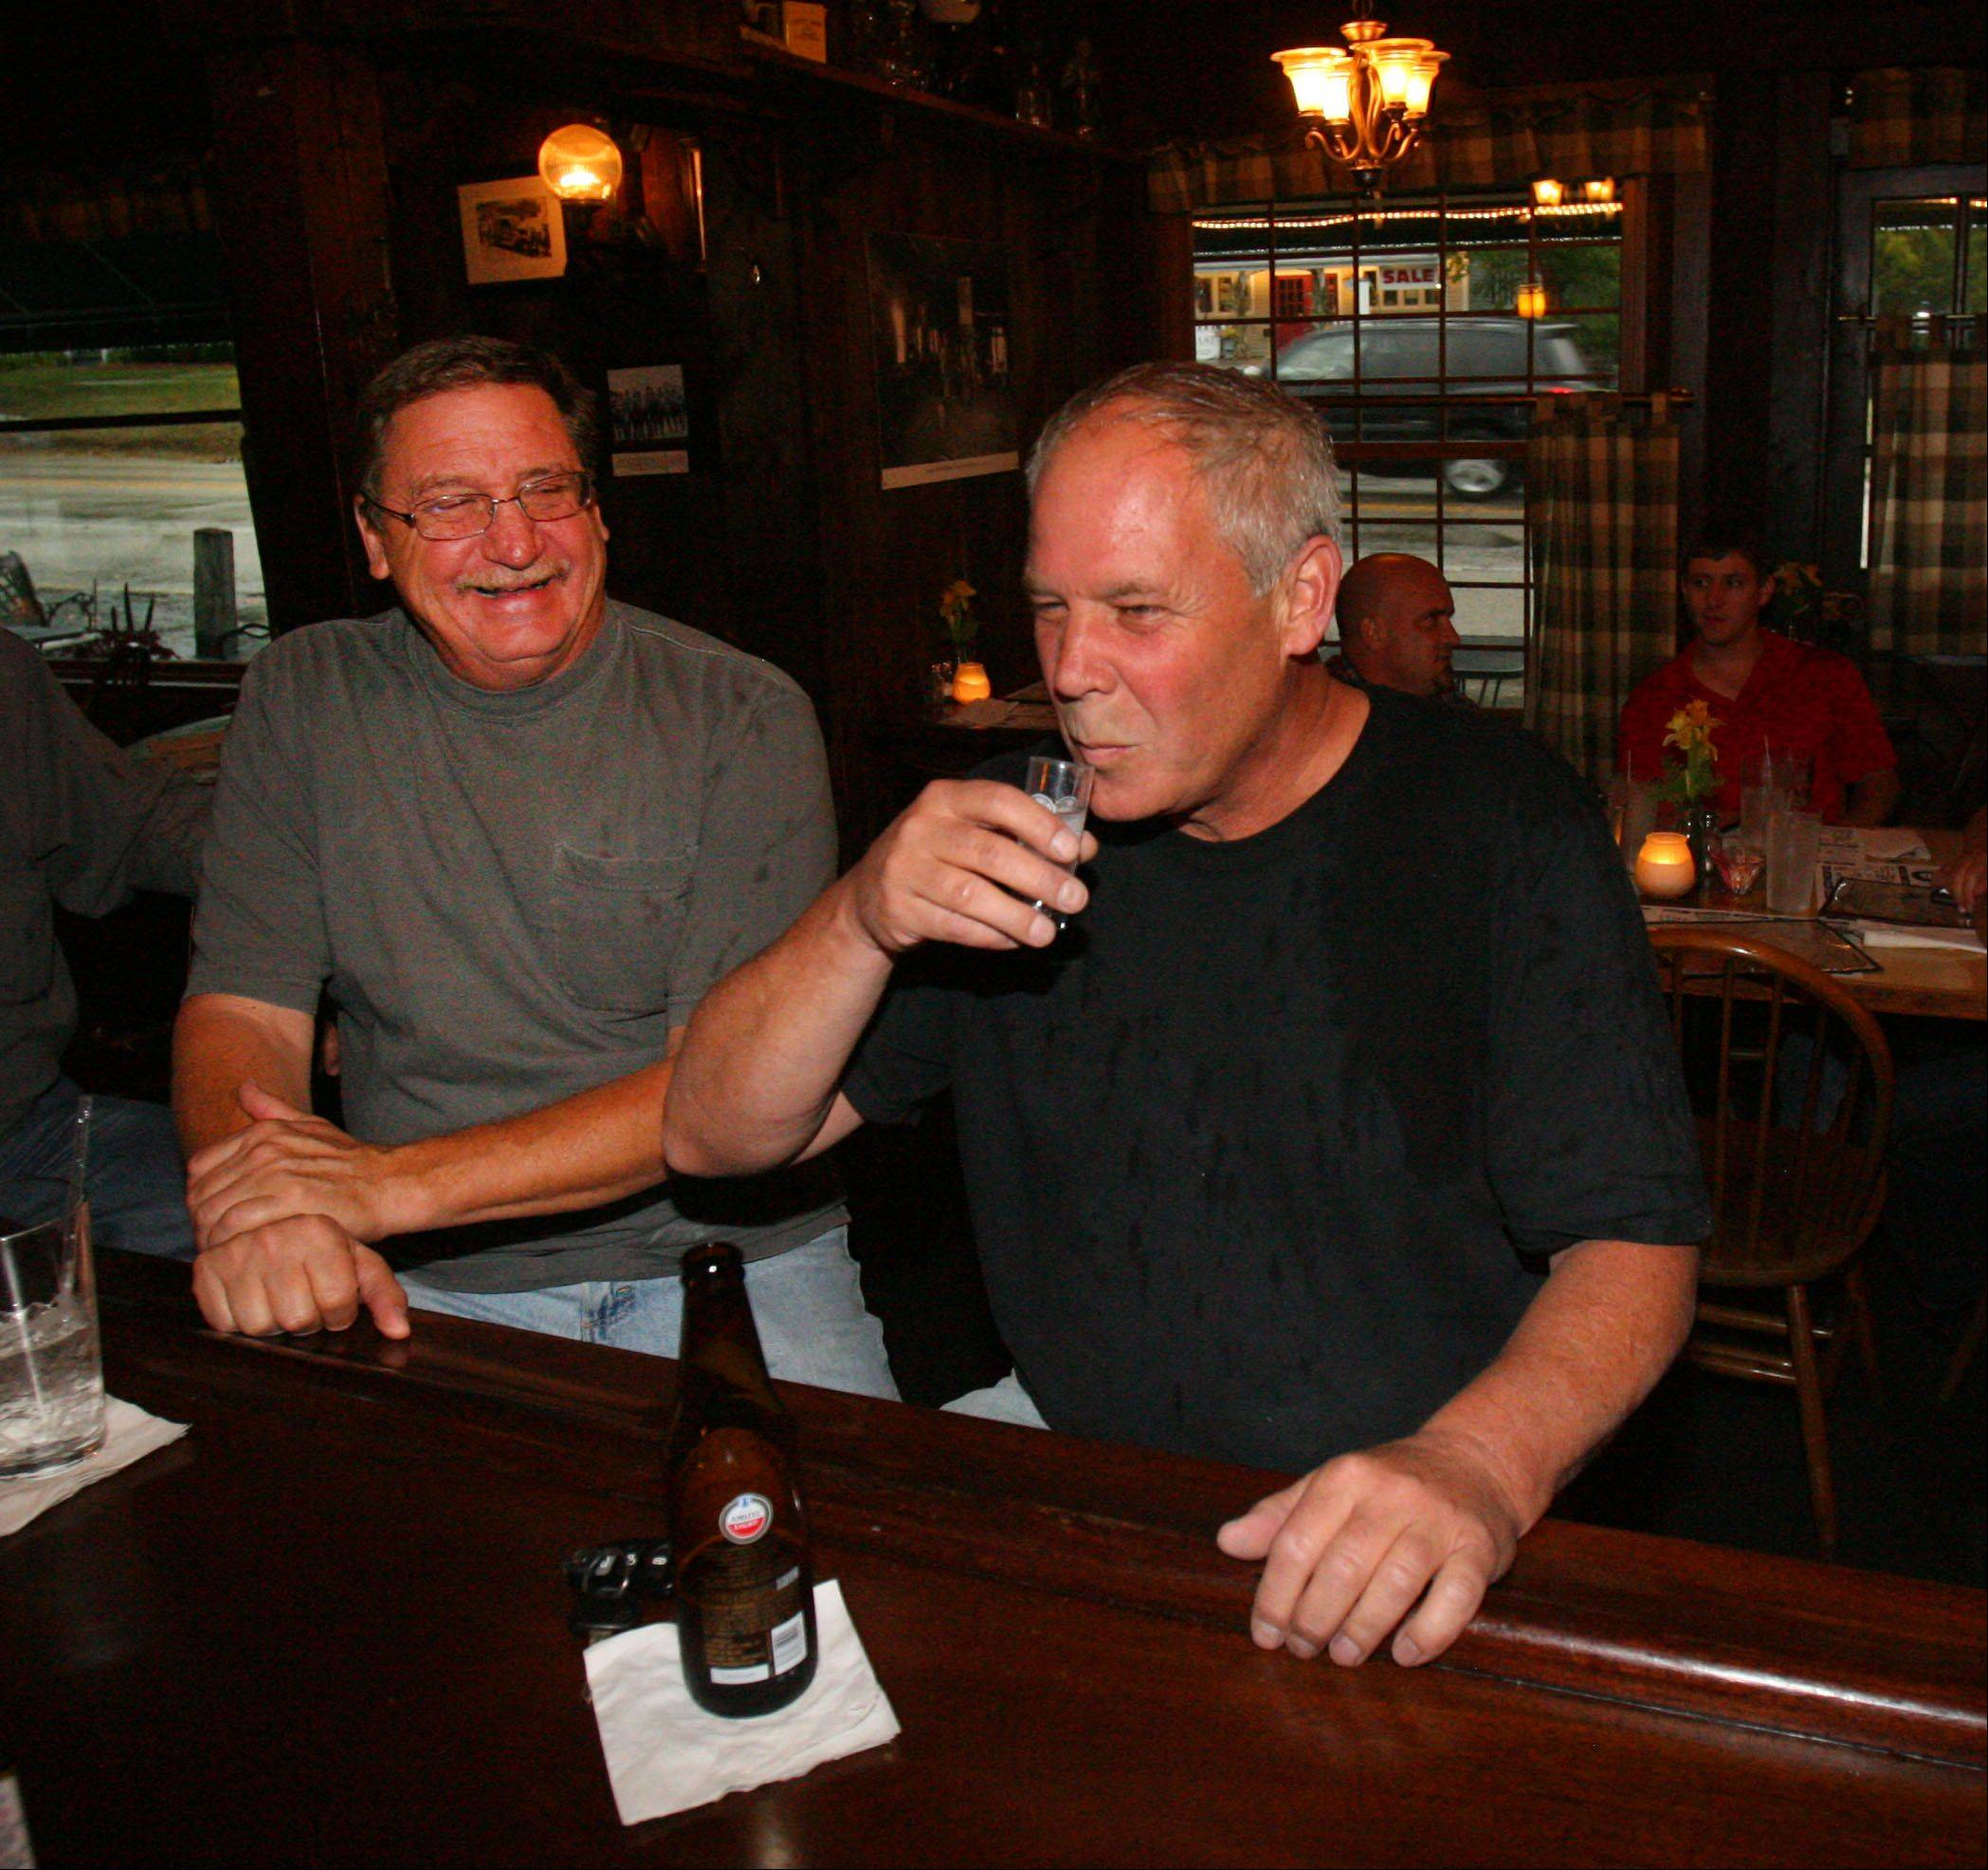 Bob Rosencrans of Buffalo Grove, left, and Tim Breen of Long Grove enjoy drinks at The Village Tavern.